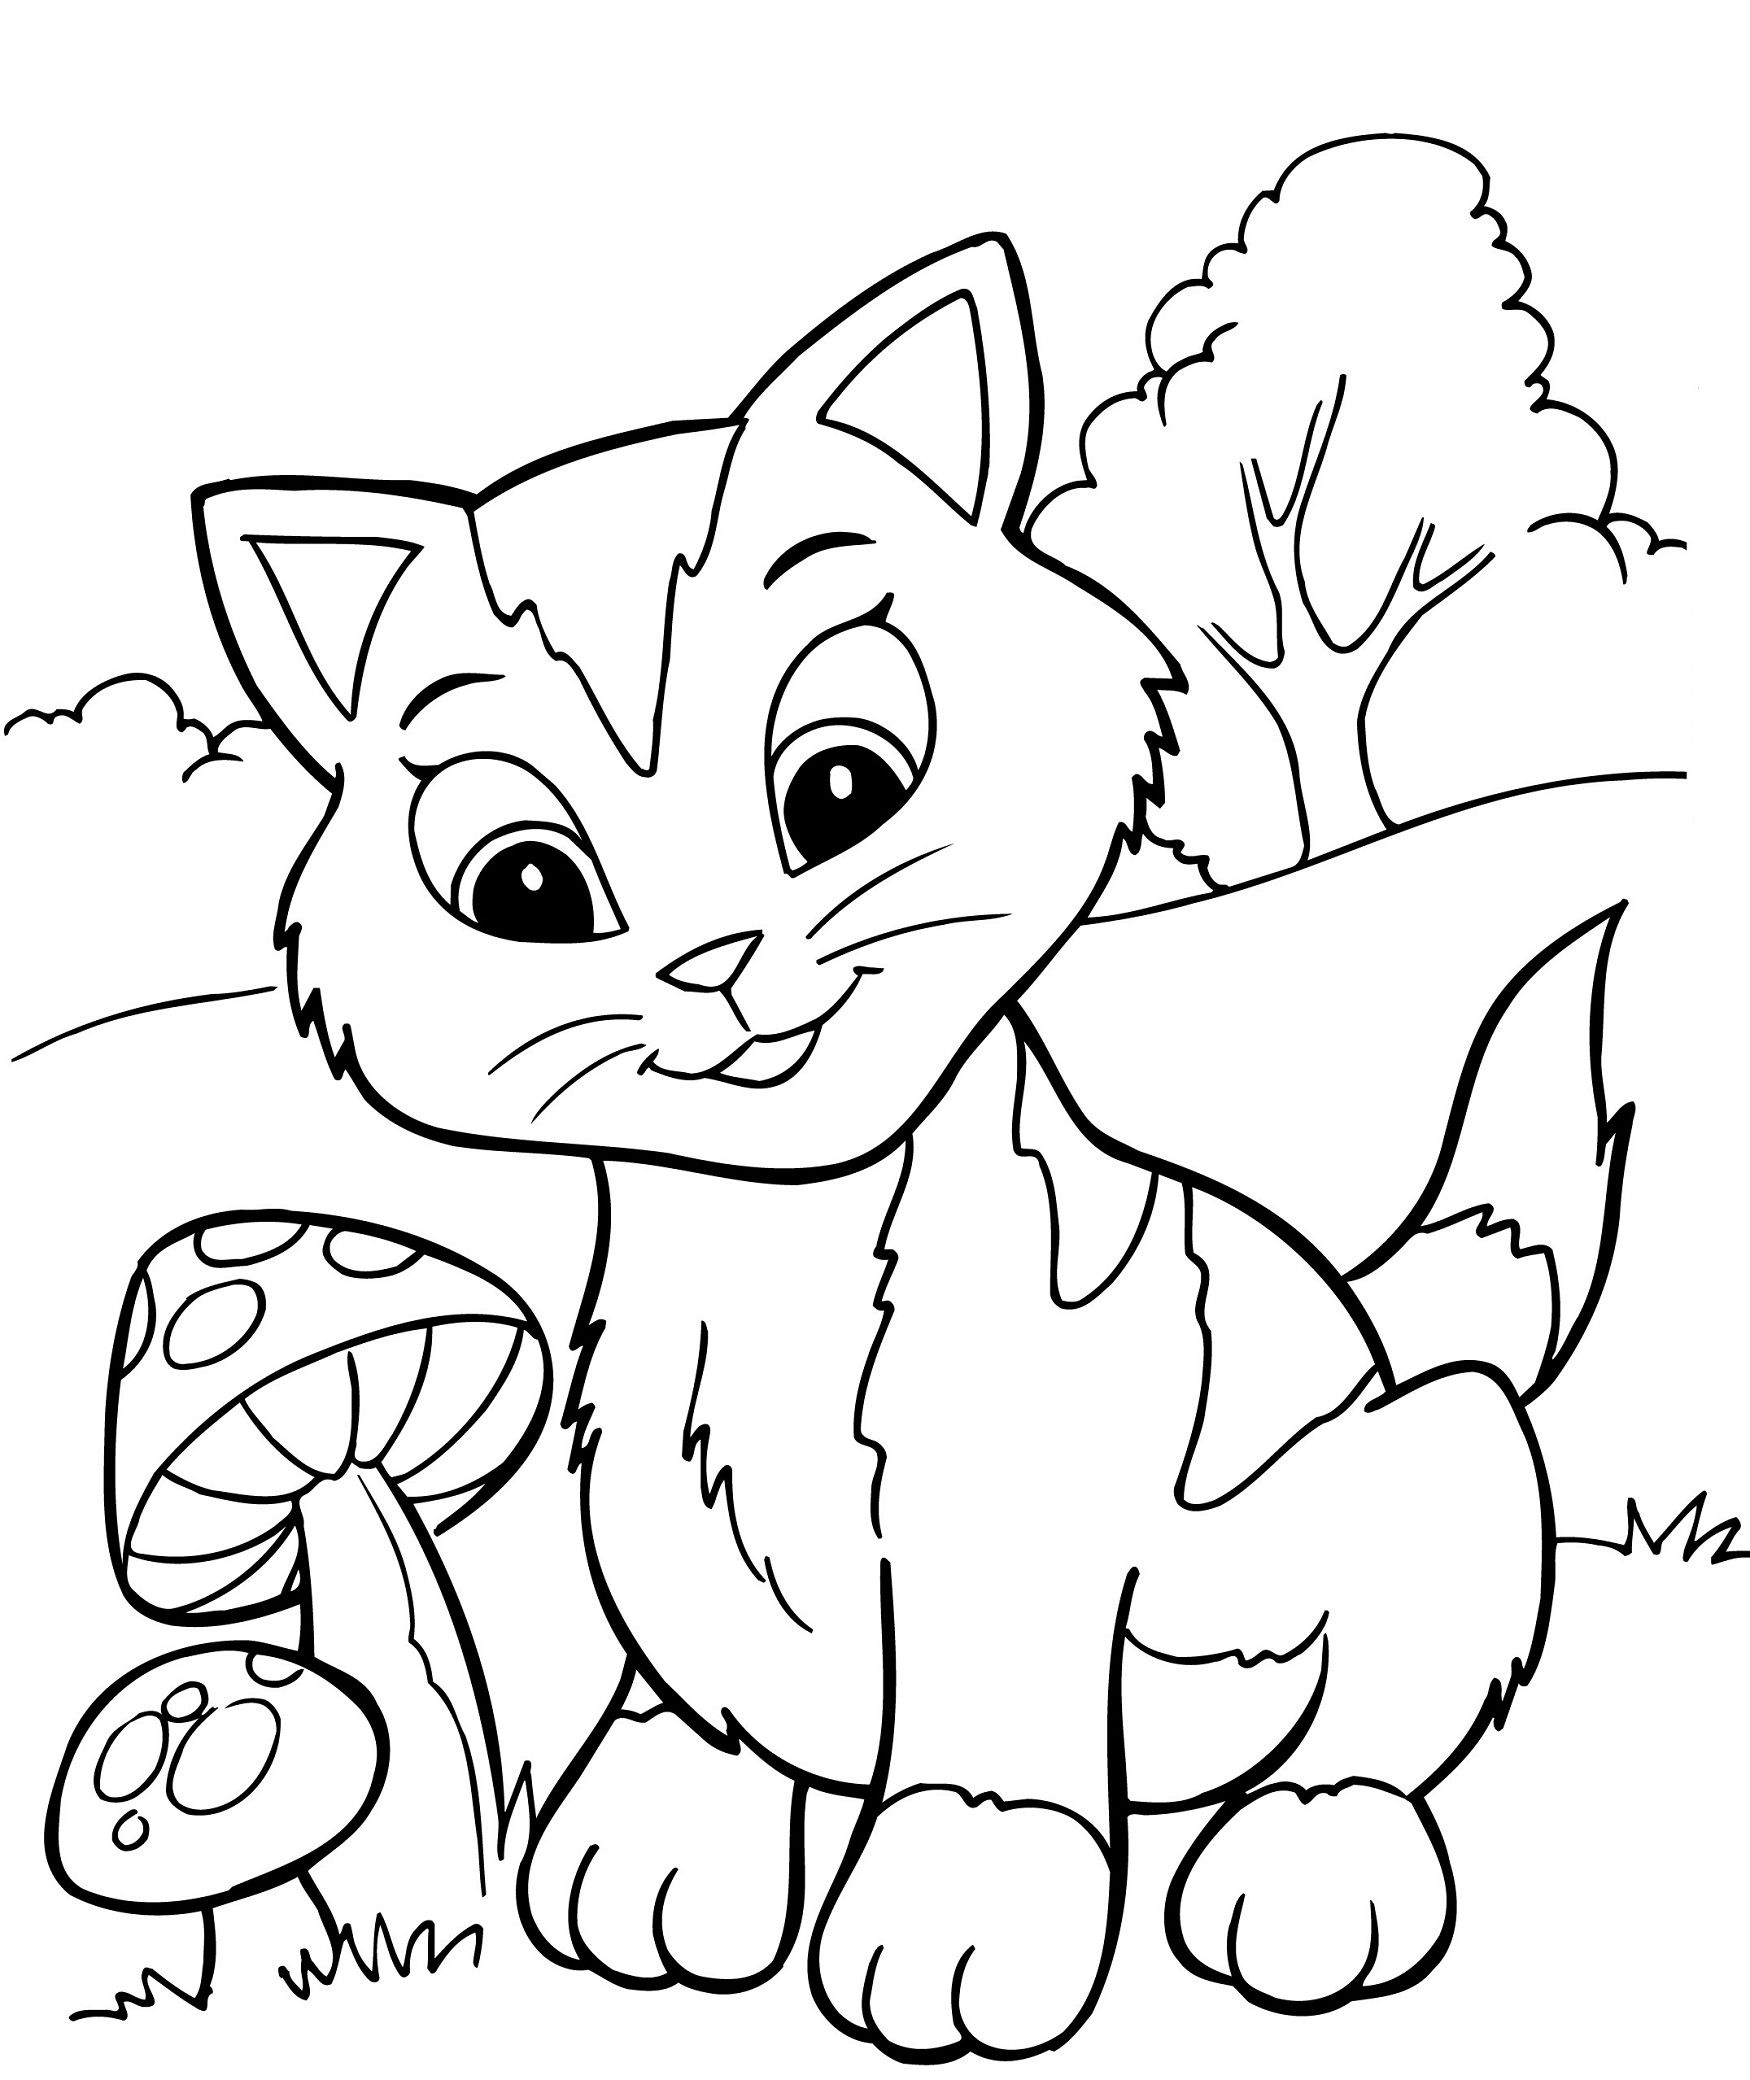 pictures of cats and kittens to color free printable kitten coloring pages for kids best and pictures to cats color kittens of